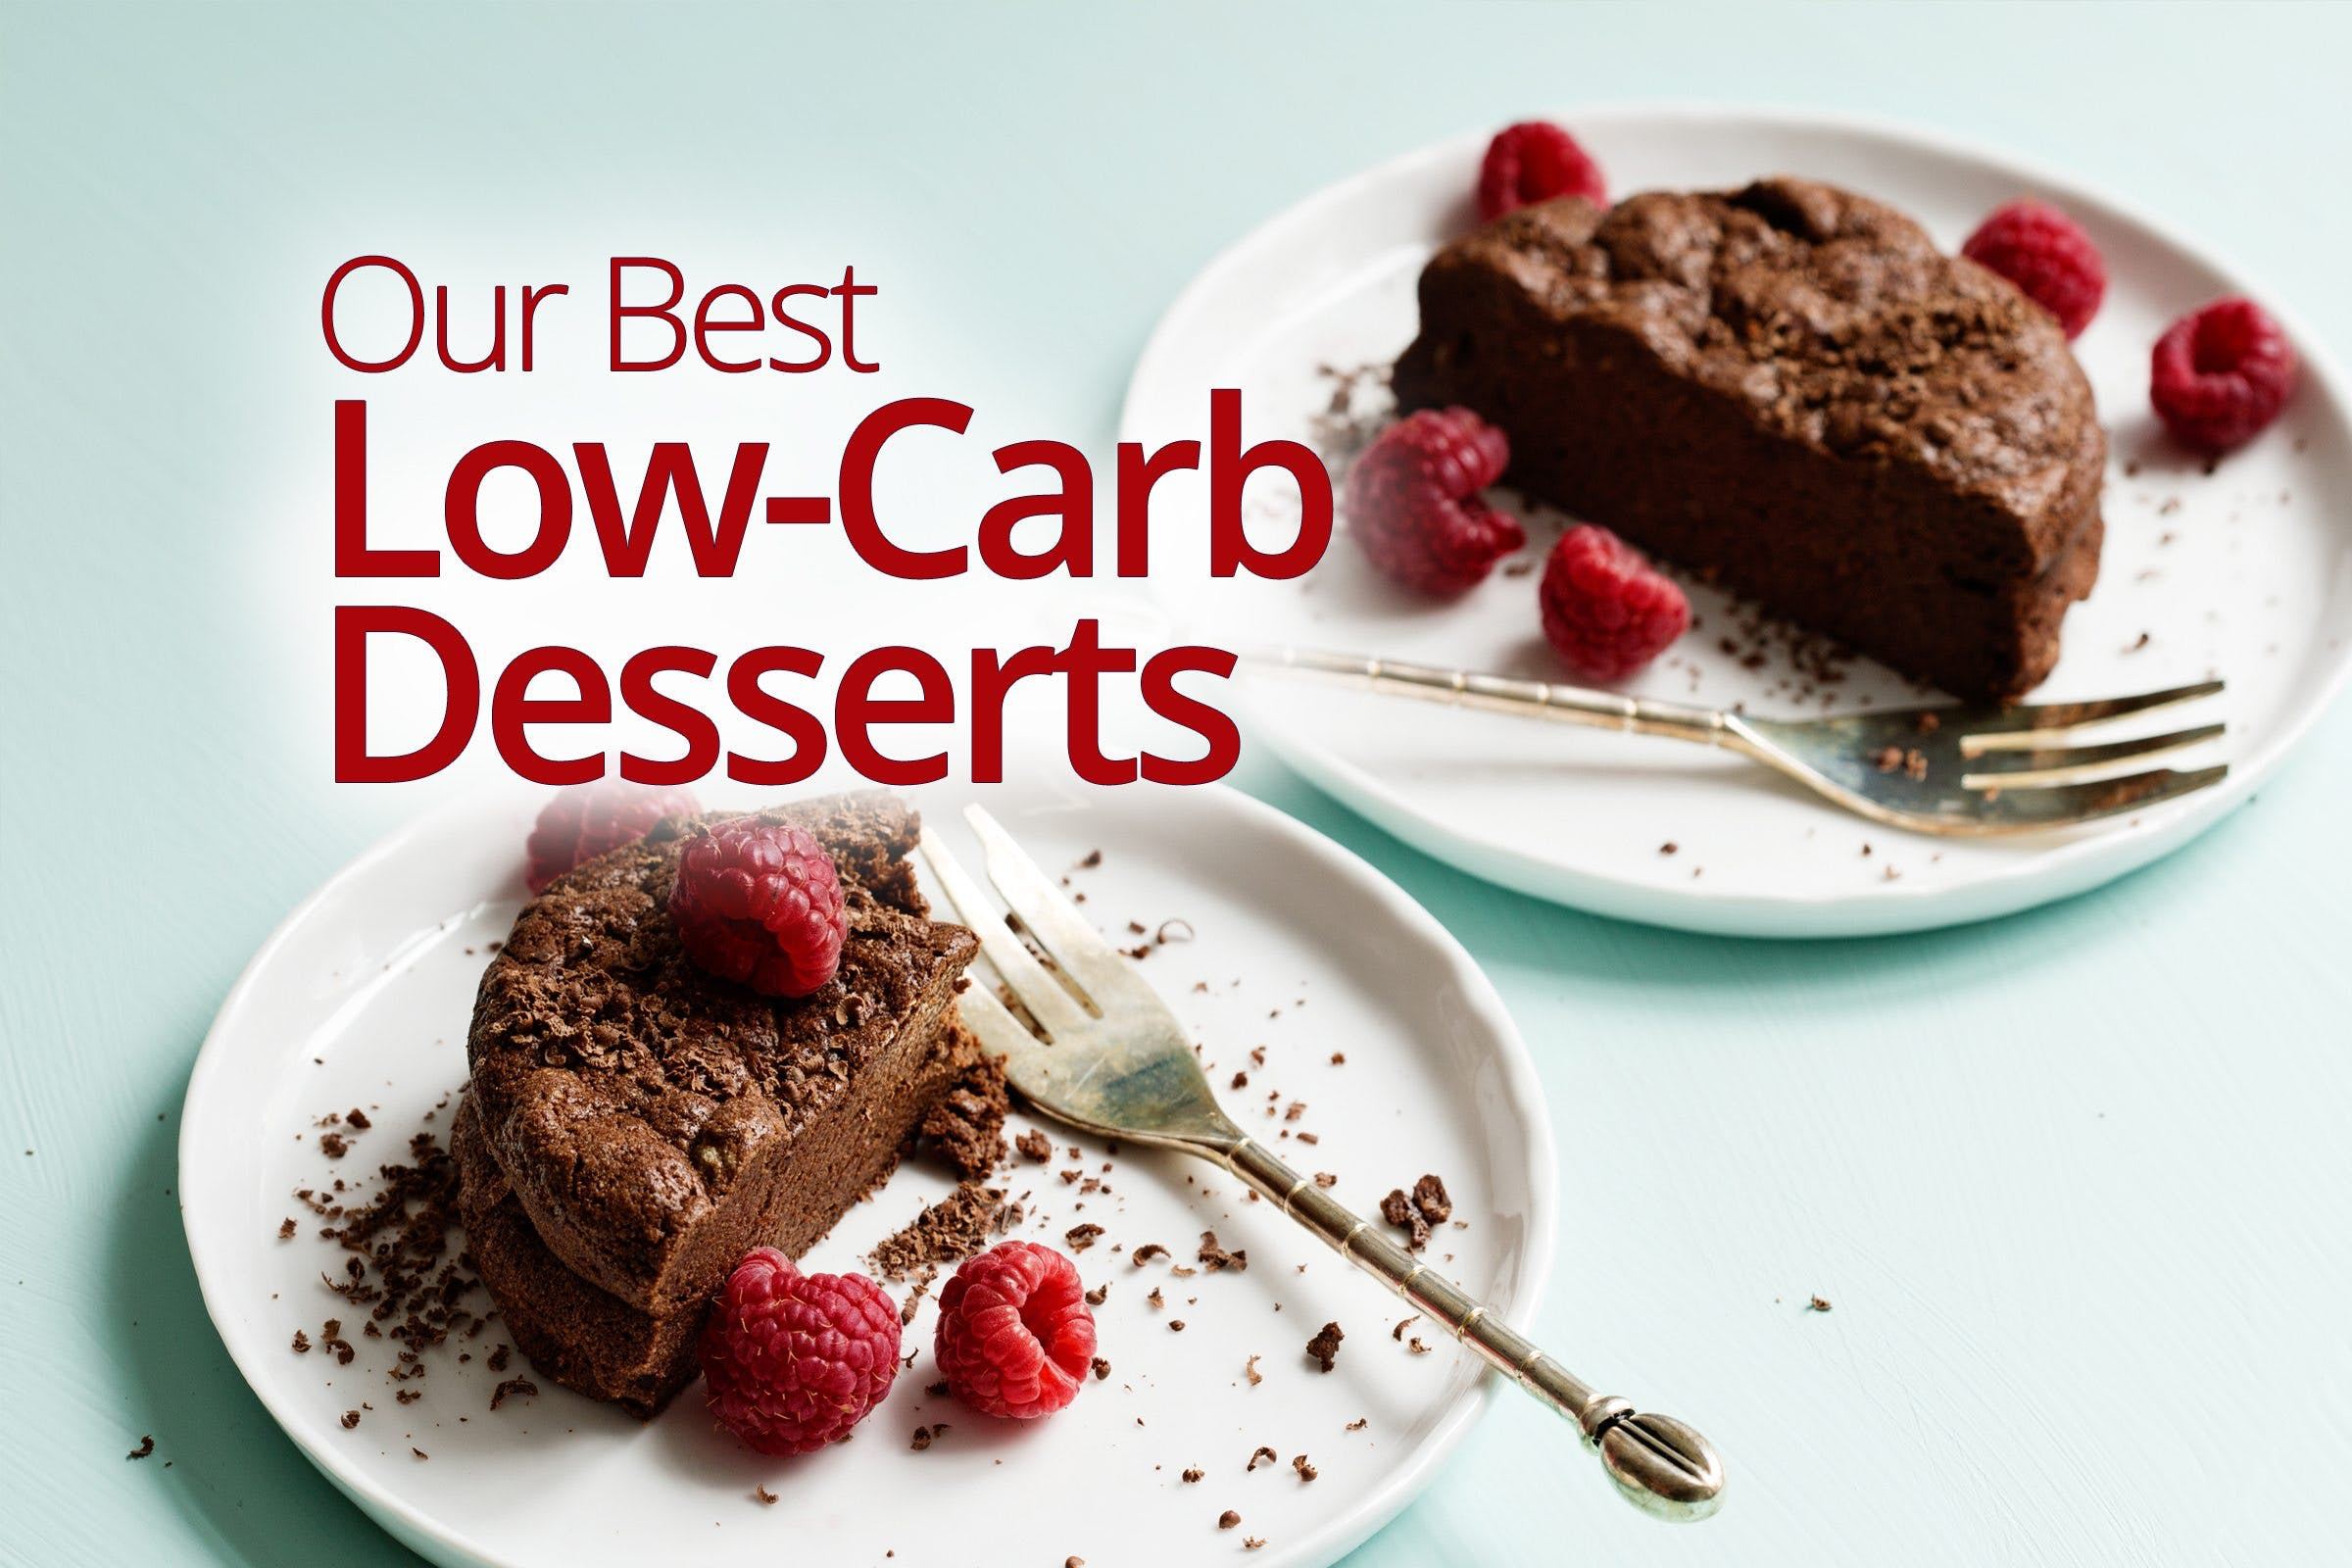 The best low-carb desserts